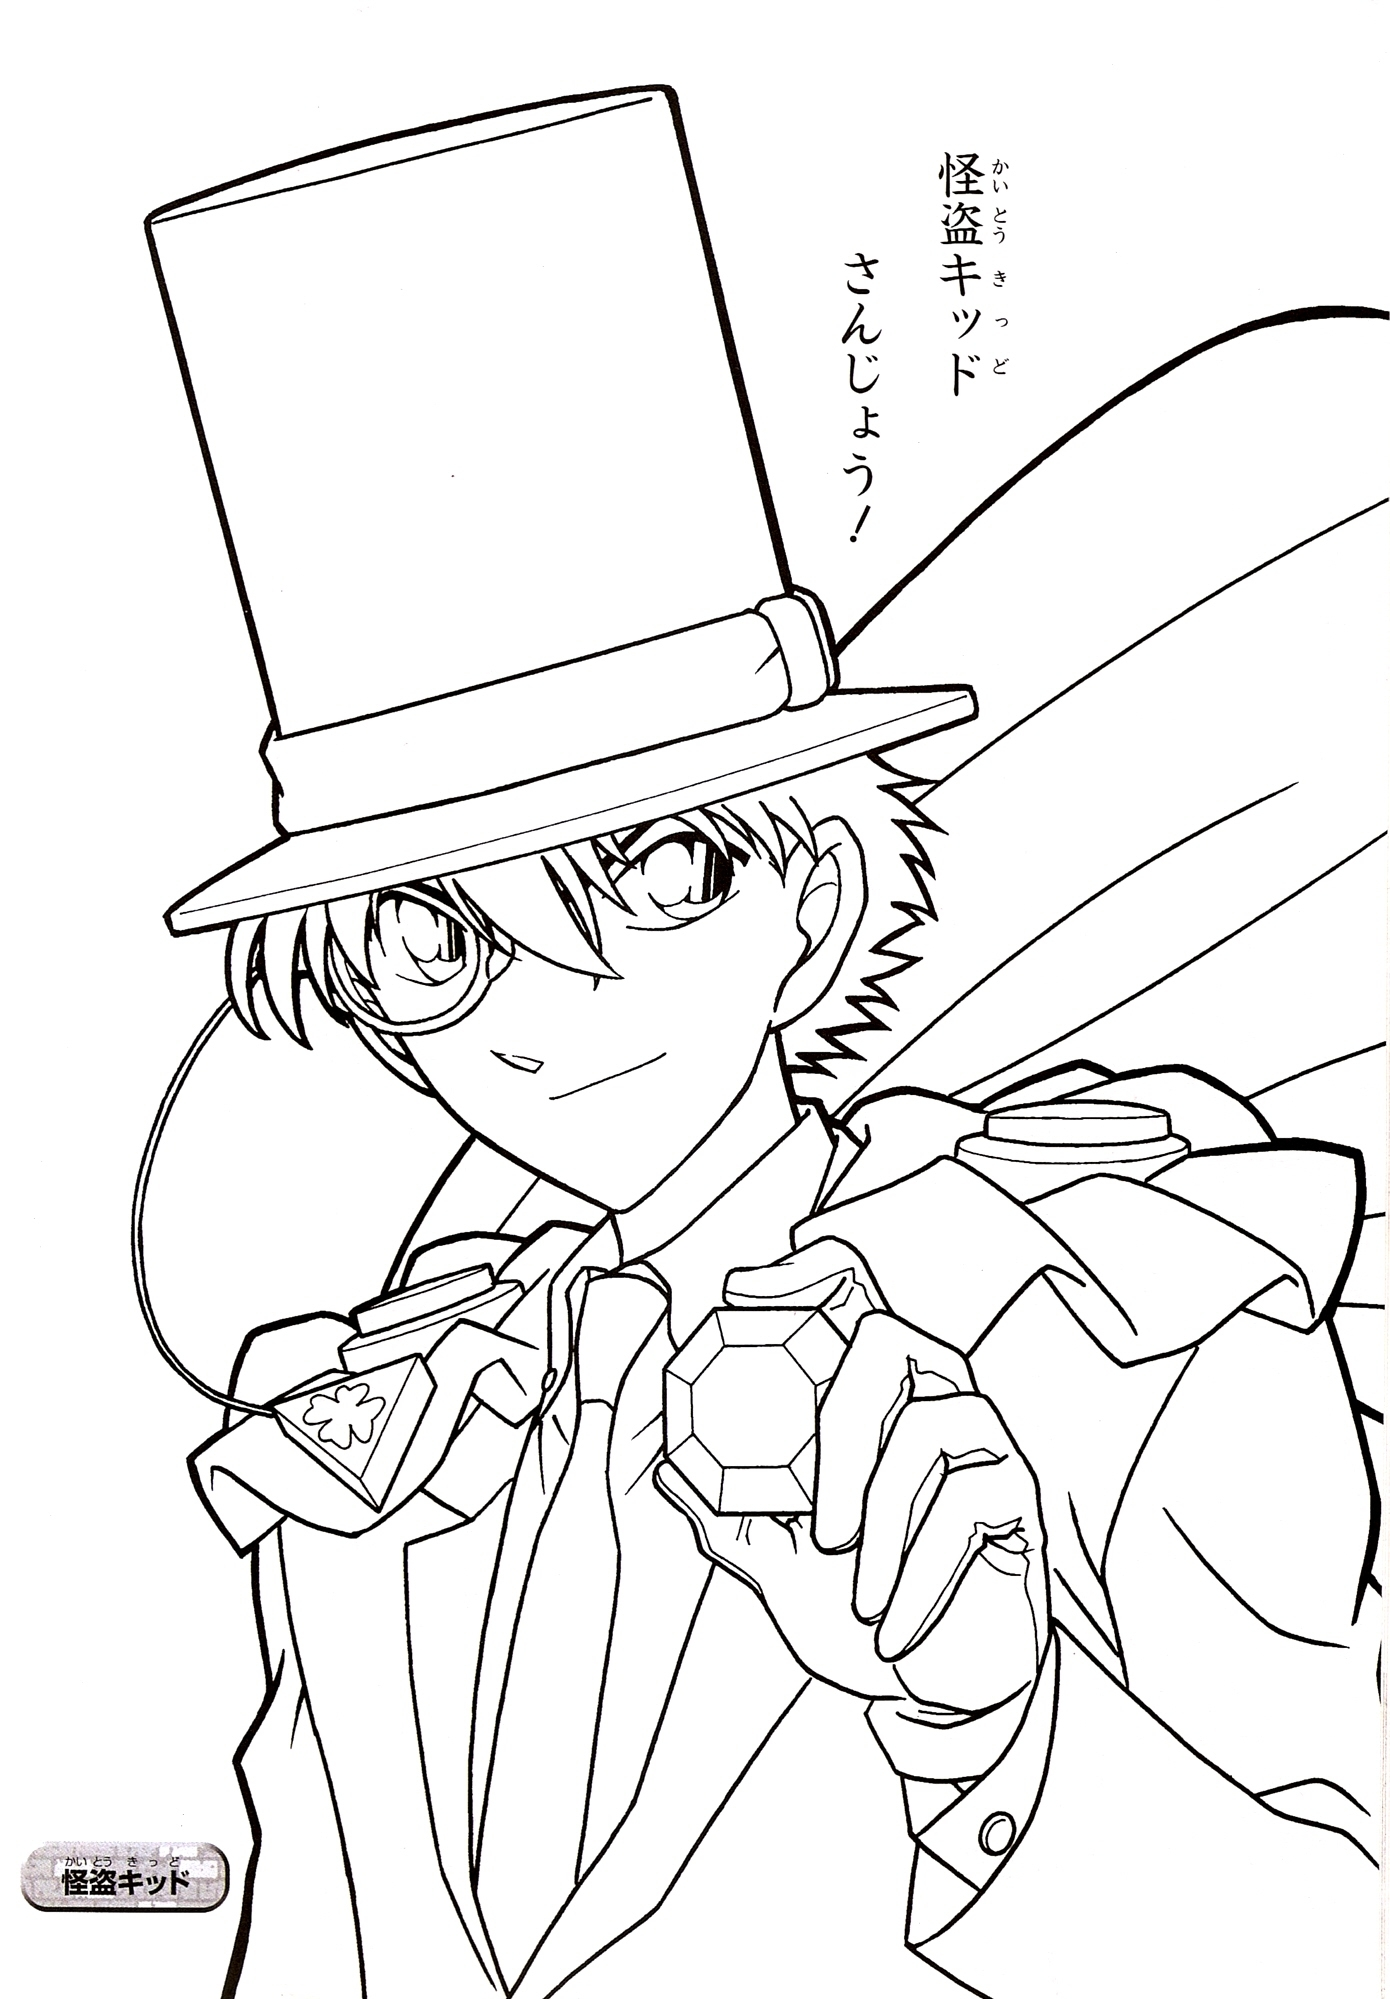 Detective Conan Shinichi Coloring Coloring Pages Detective Conan Coloring Pages